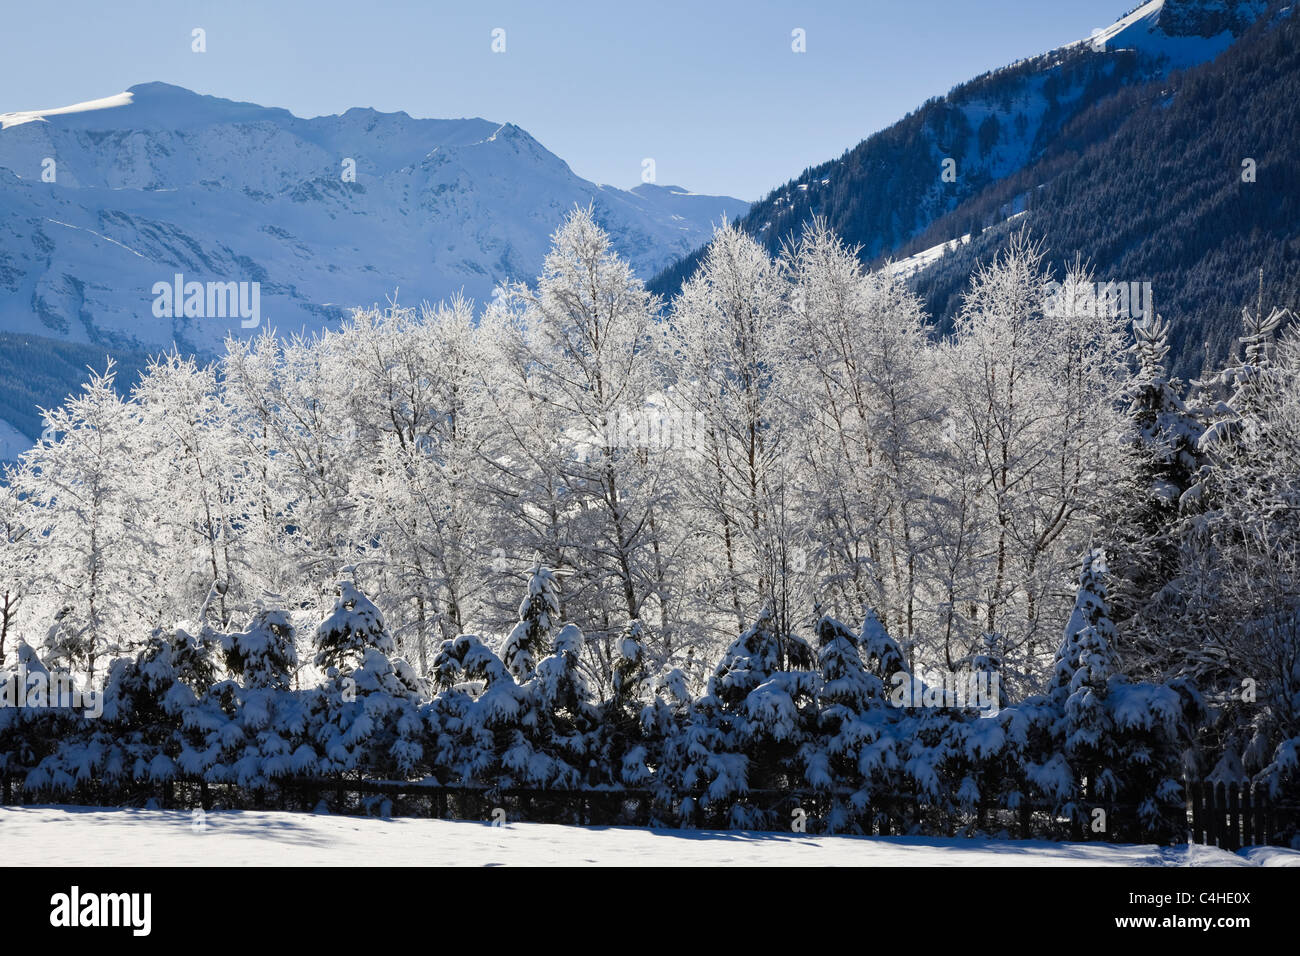 Austria, Europe. White hoarfrost on the branches of backlit trees in alpine mountains. - Stock Image